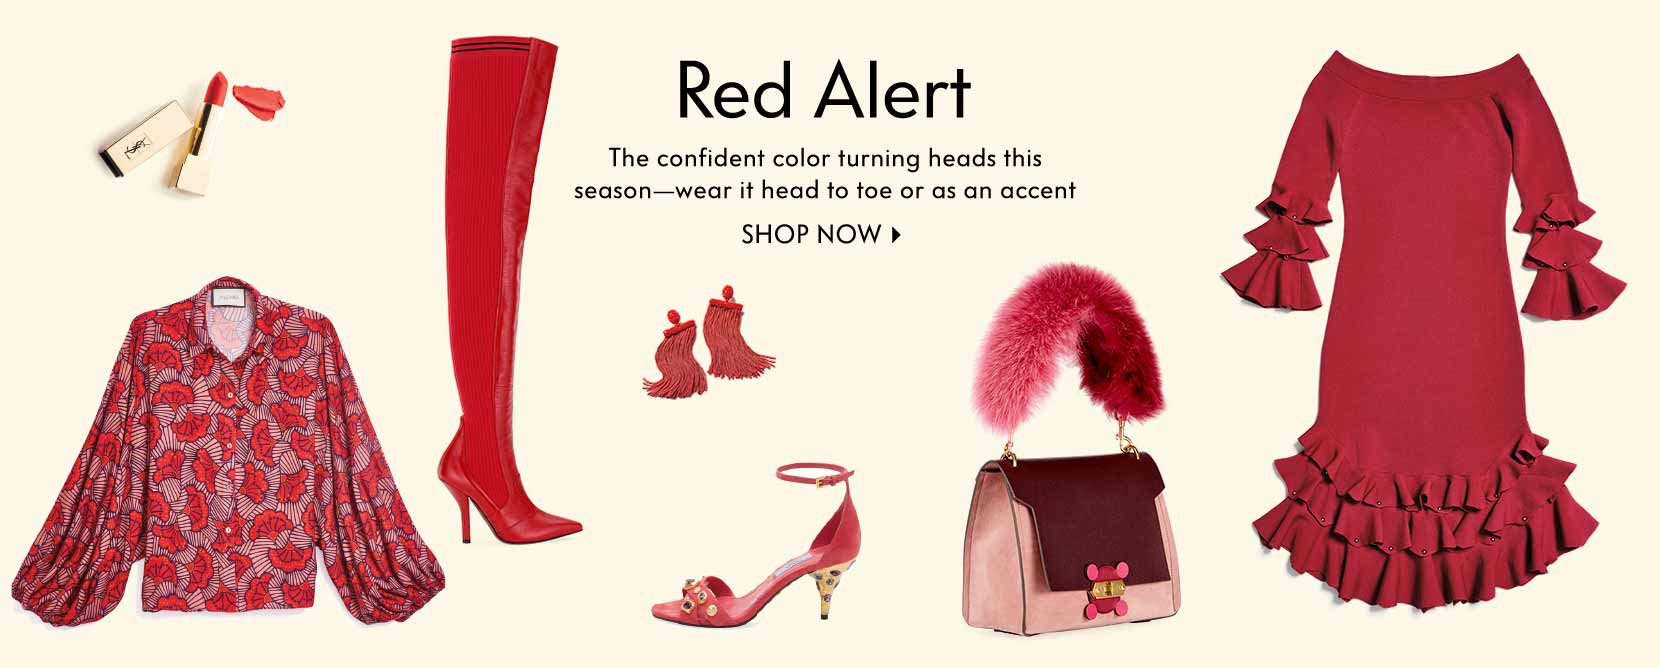 Red Alert The confident color to wear head to toe or as an accent Shop now